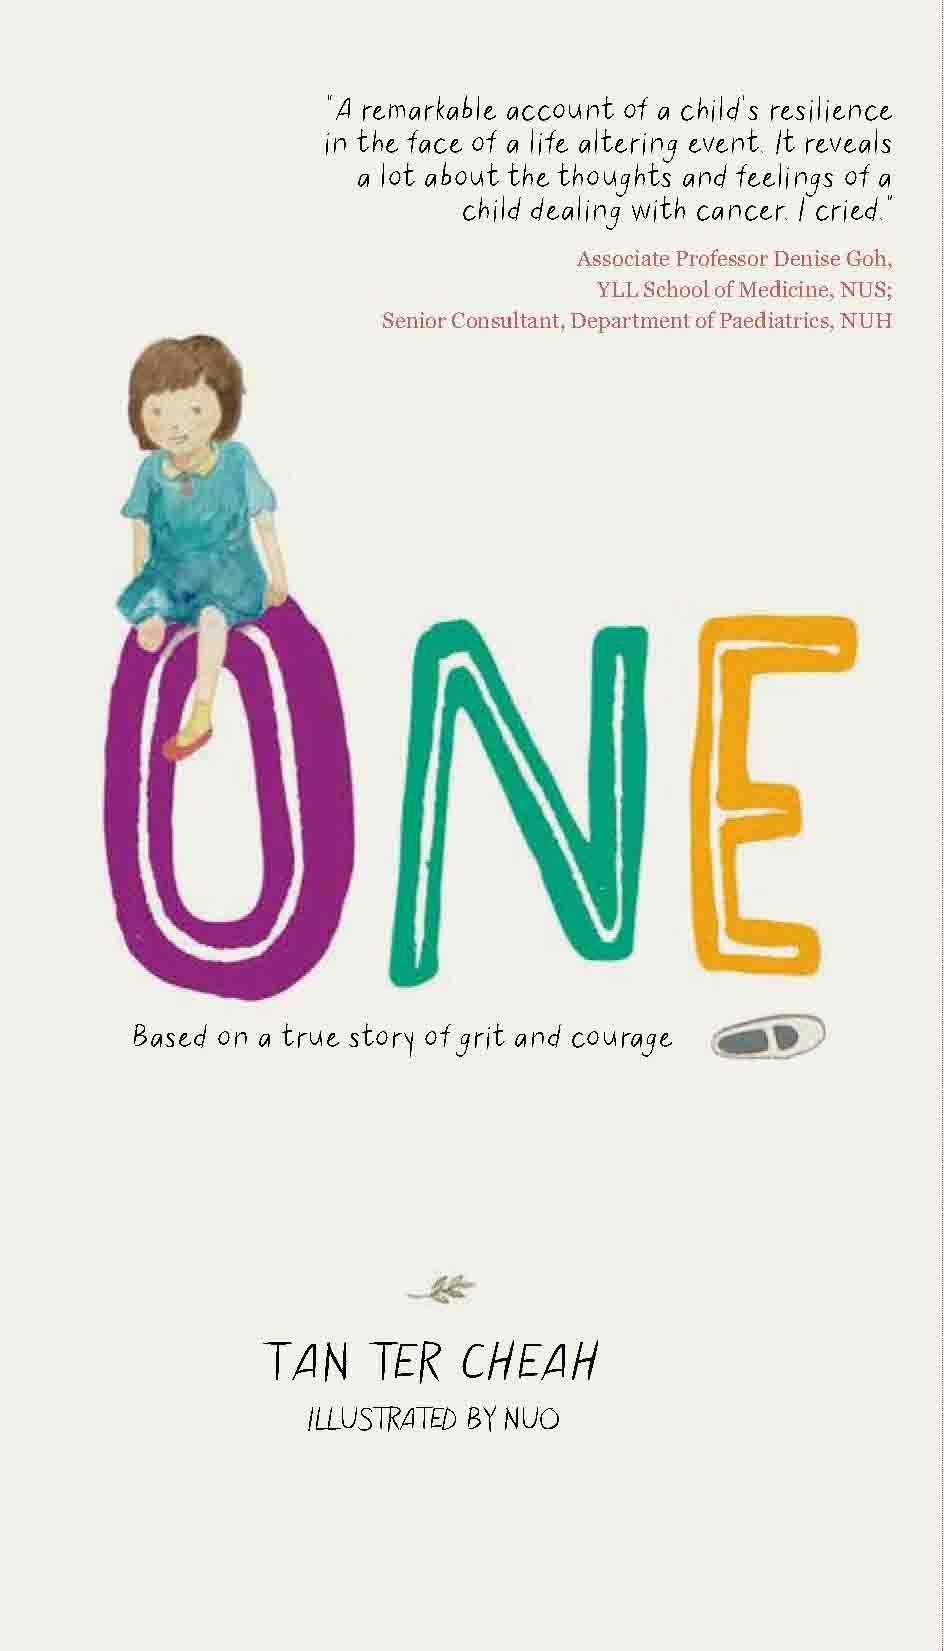 One: Based on a True Story of Grit and Courage